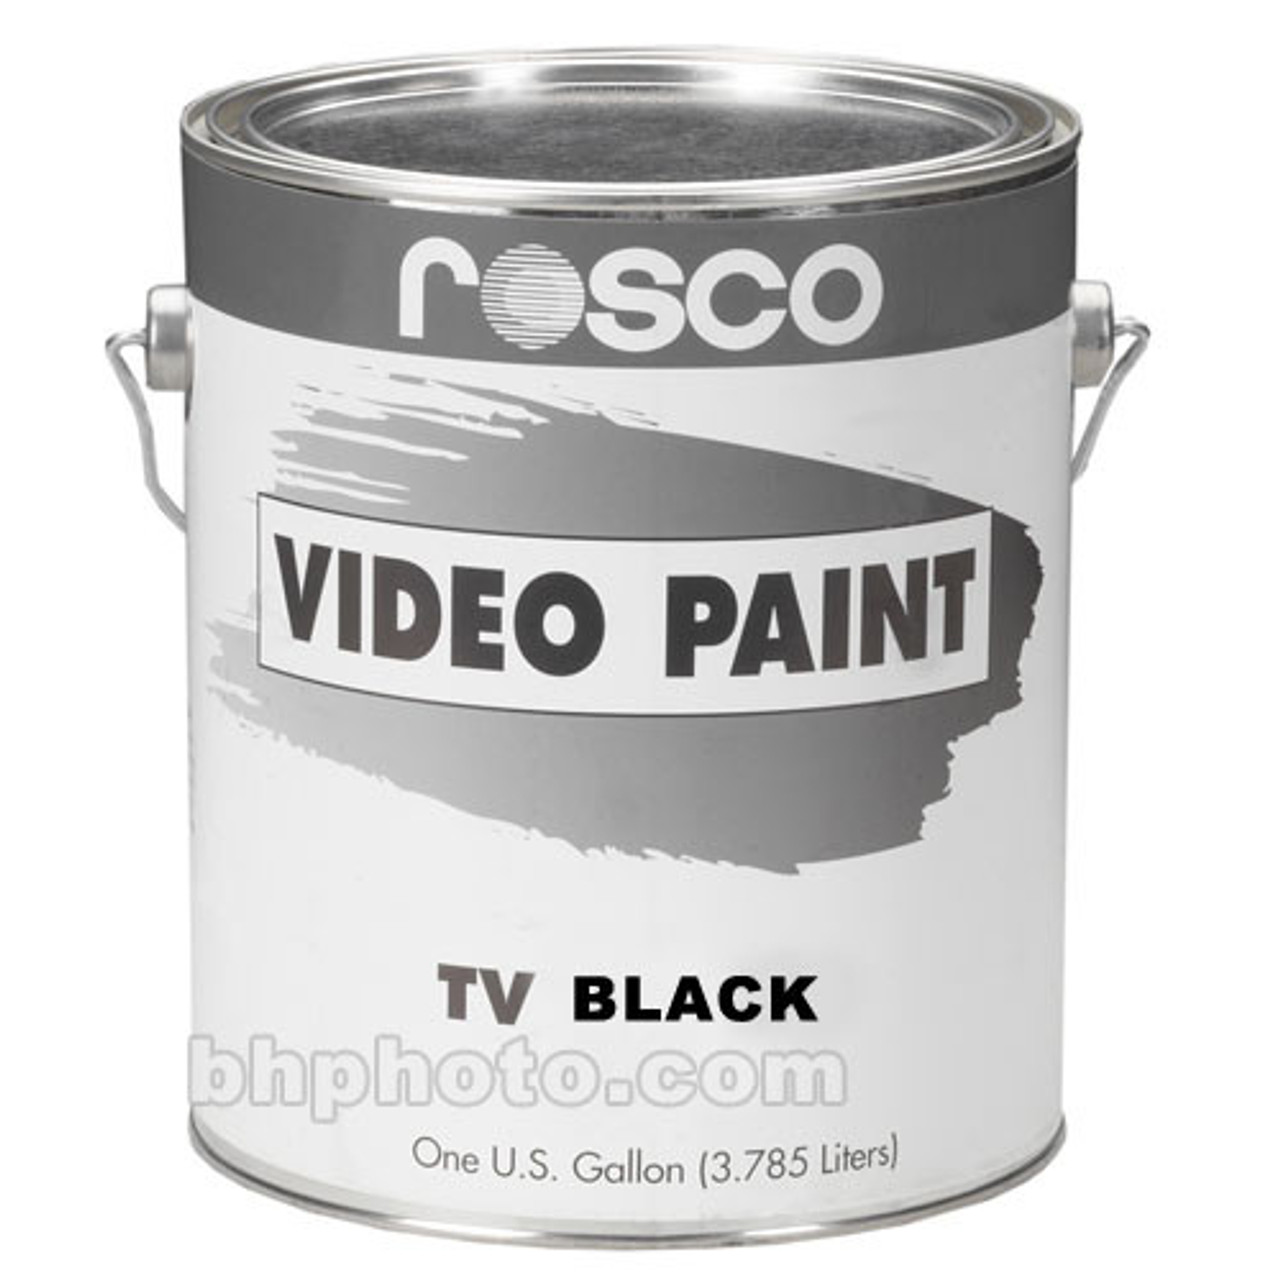 Rosco TV Paints Black - Gallon, Green Screen